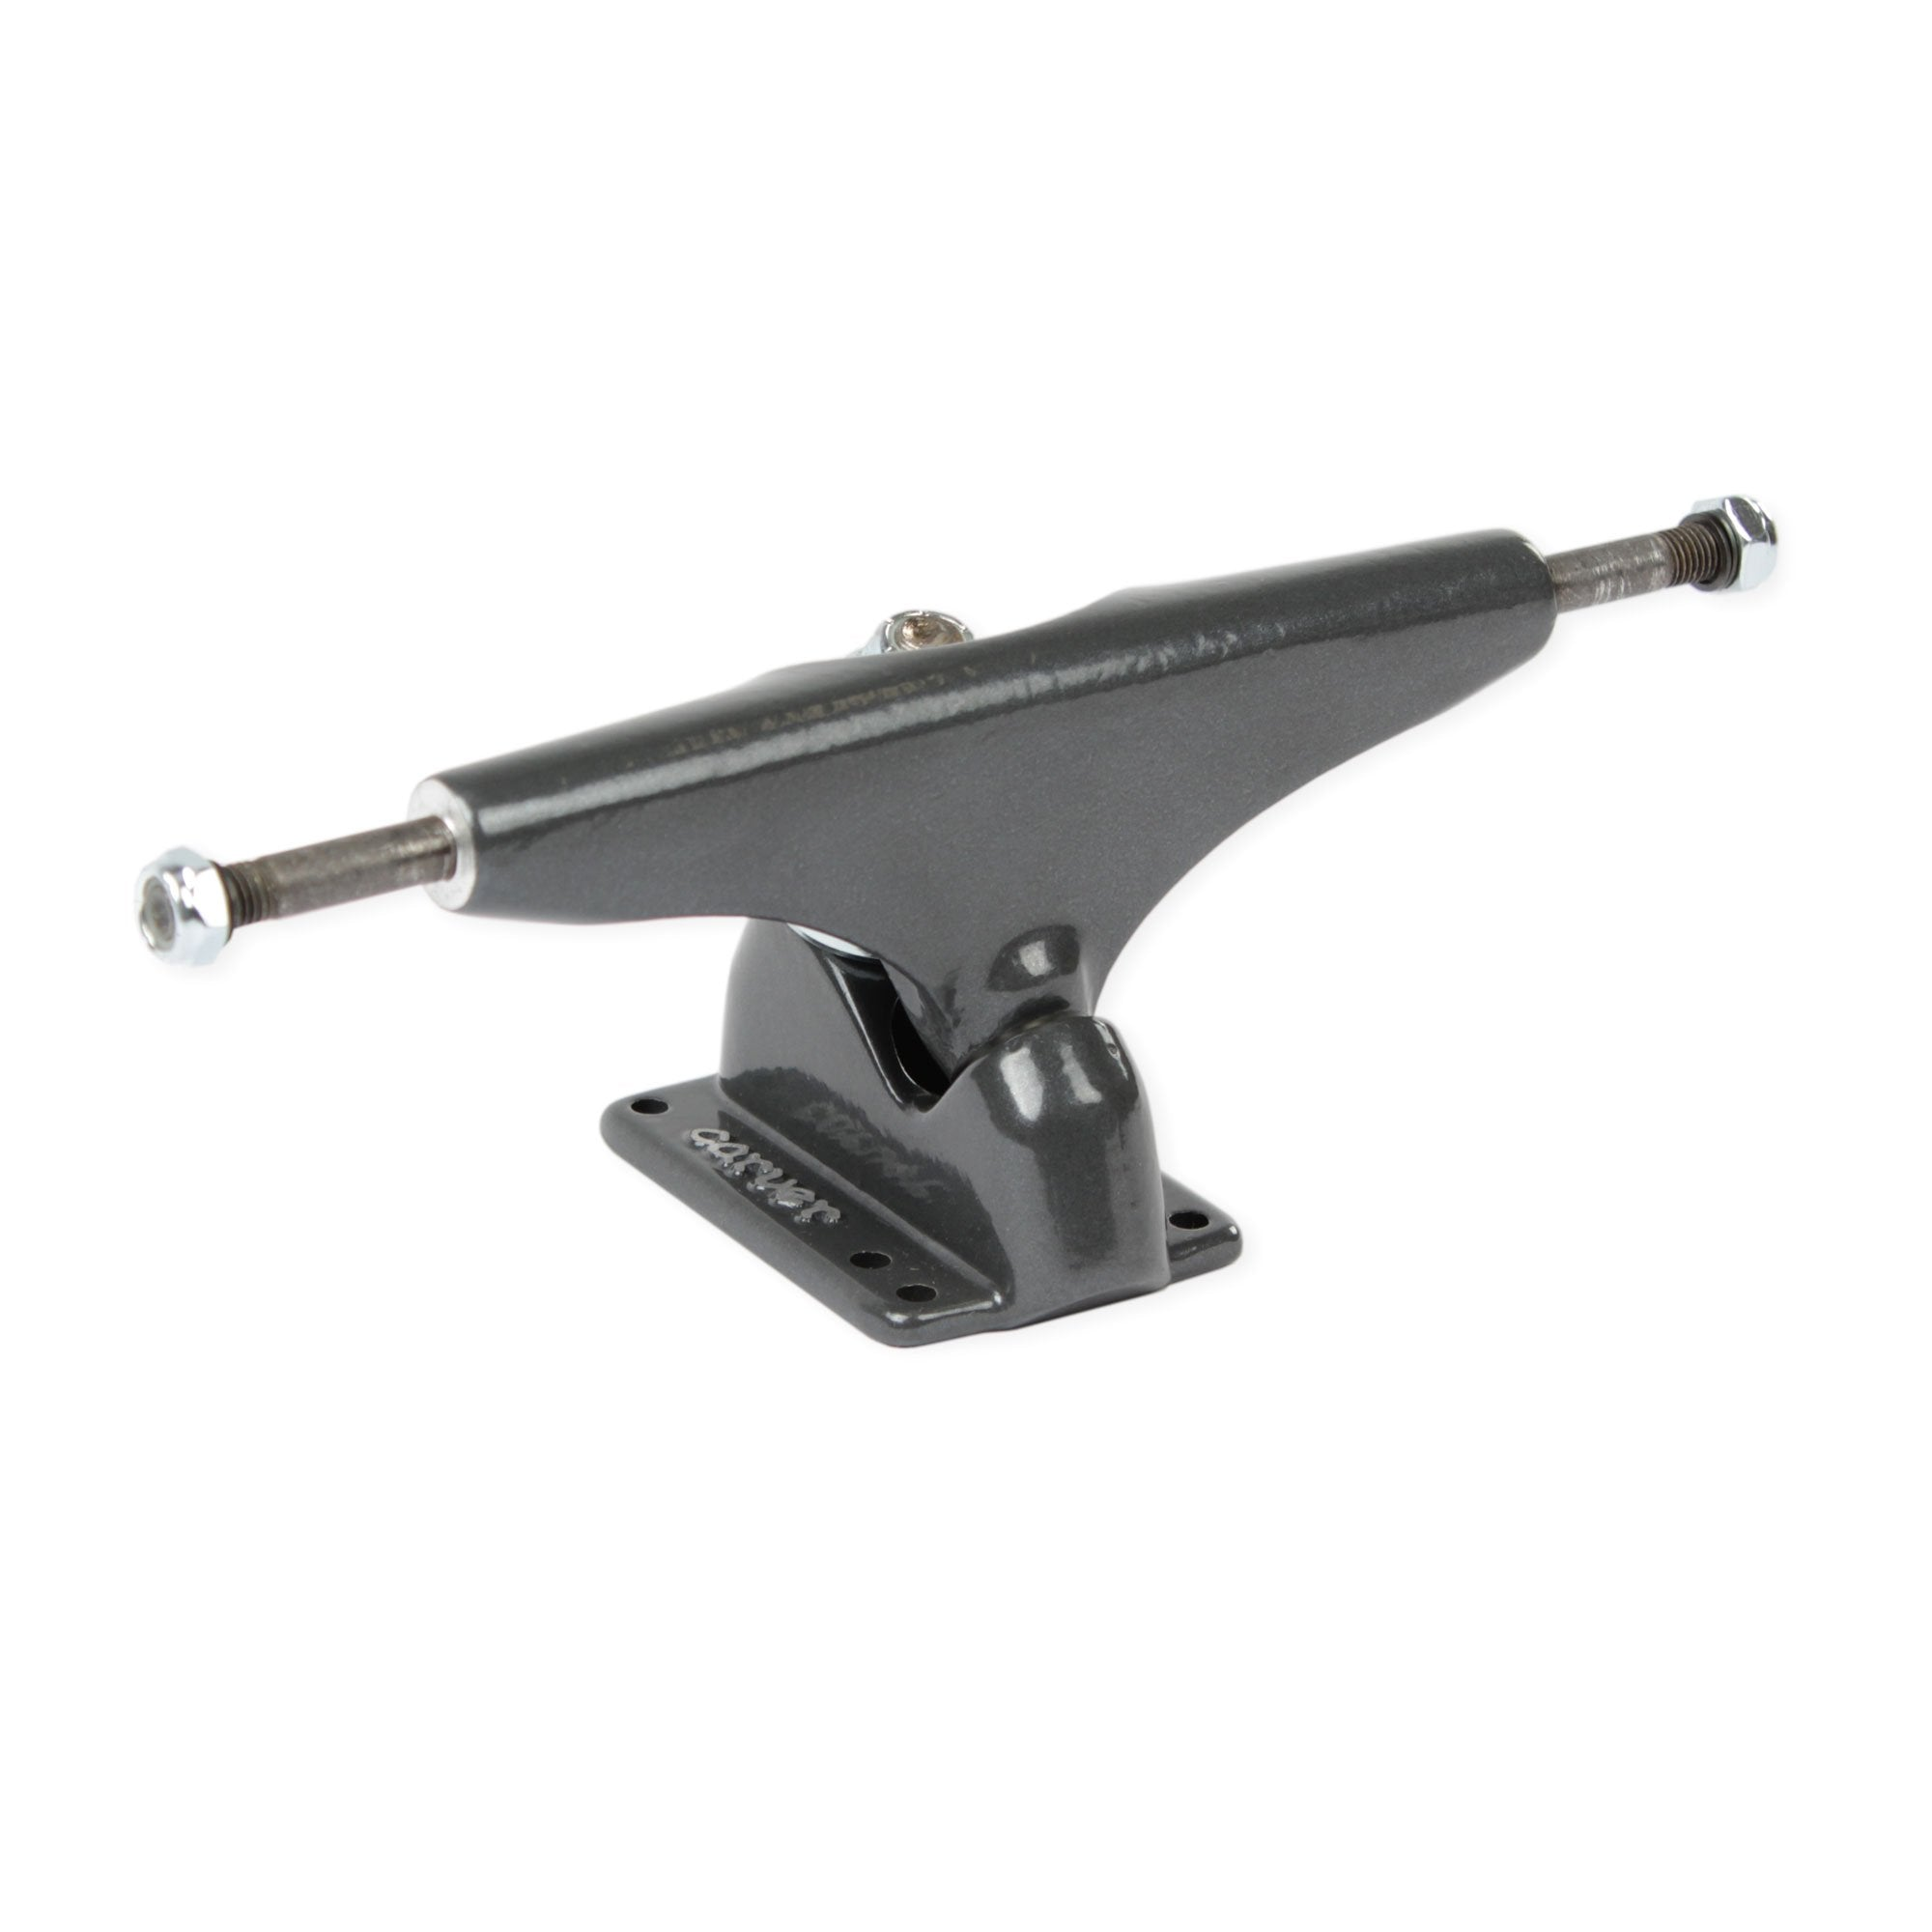 Carver Trucks C7 Graphite Product Photo #2